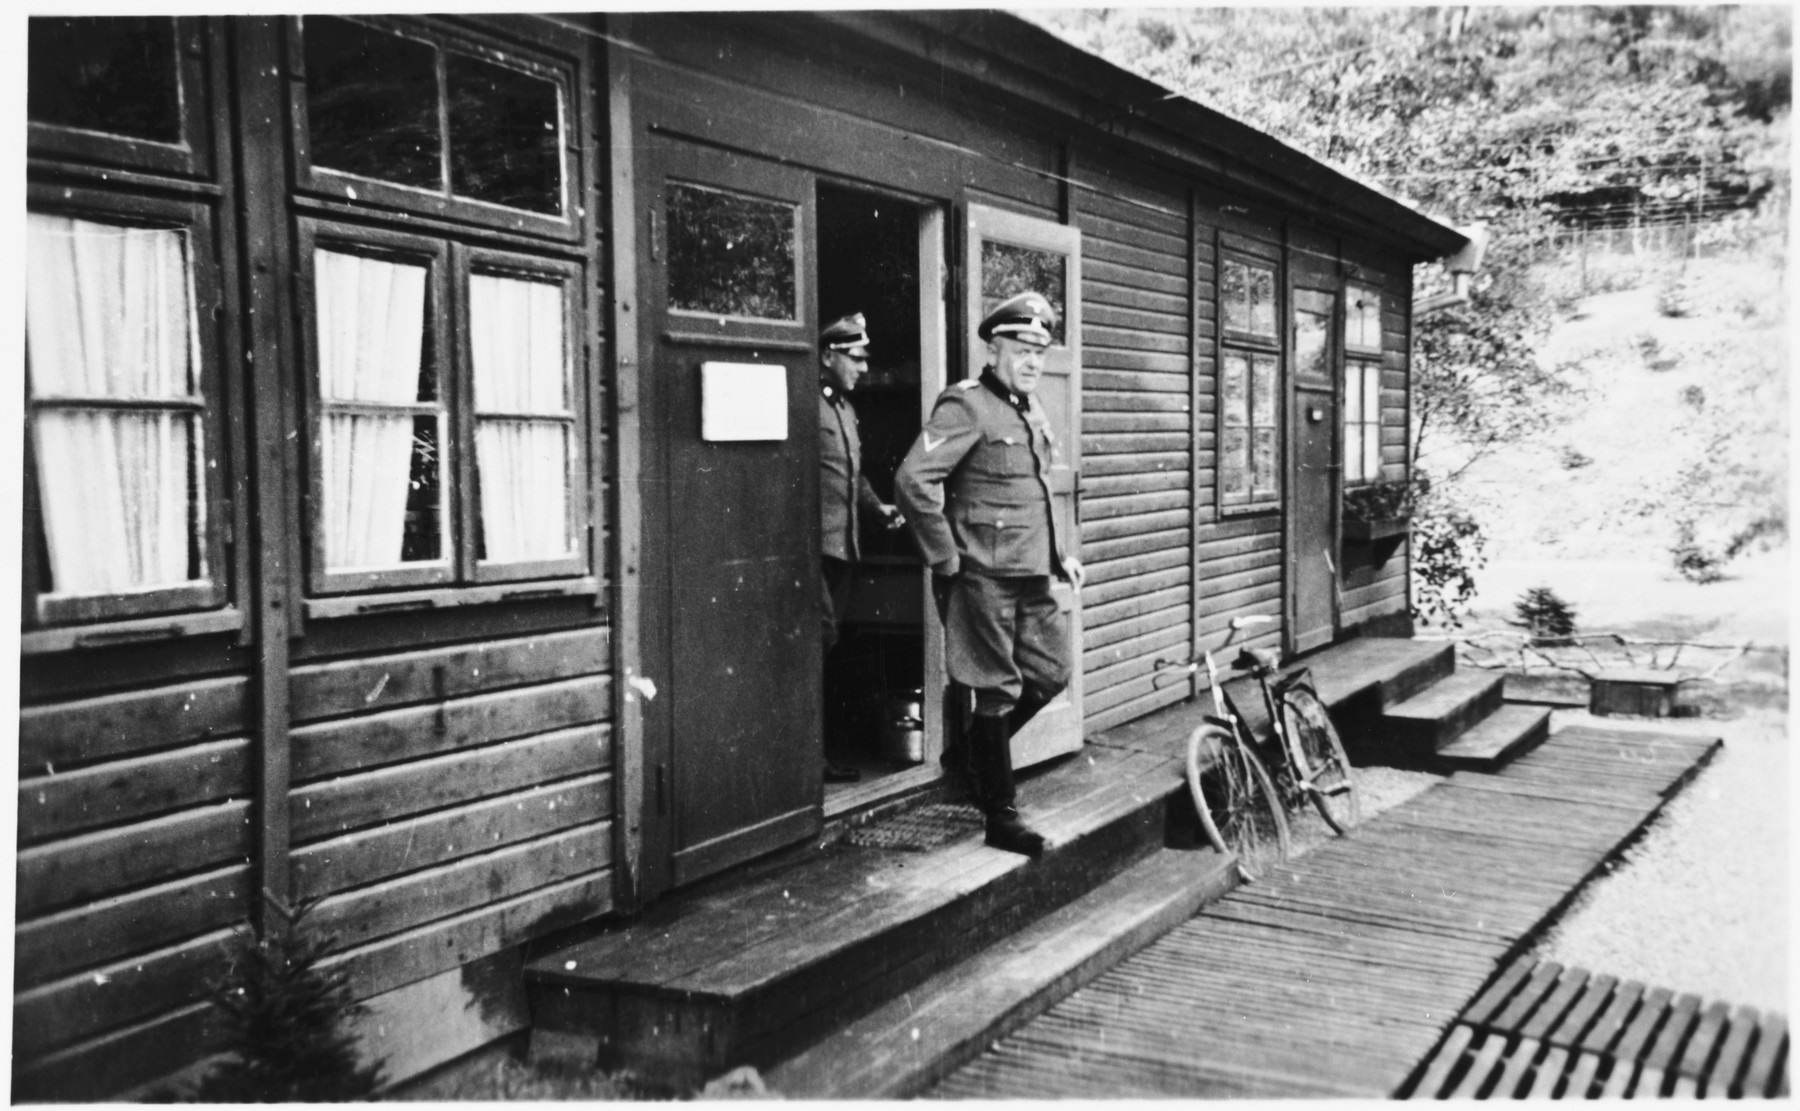 Commandant Hermann Pister exits a wooden building (possibly an administrative barracks)  at Hinzert (a sub-camp of Buchenwald).